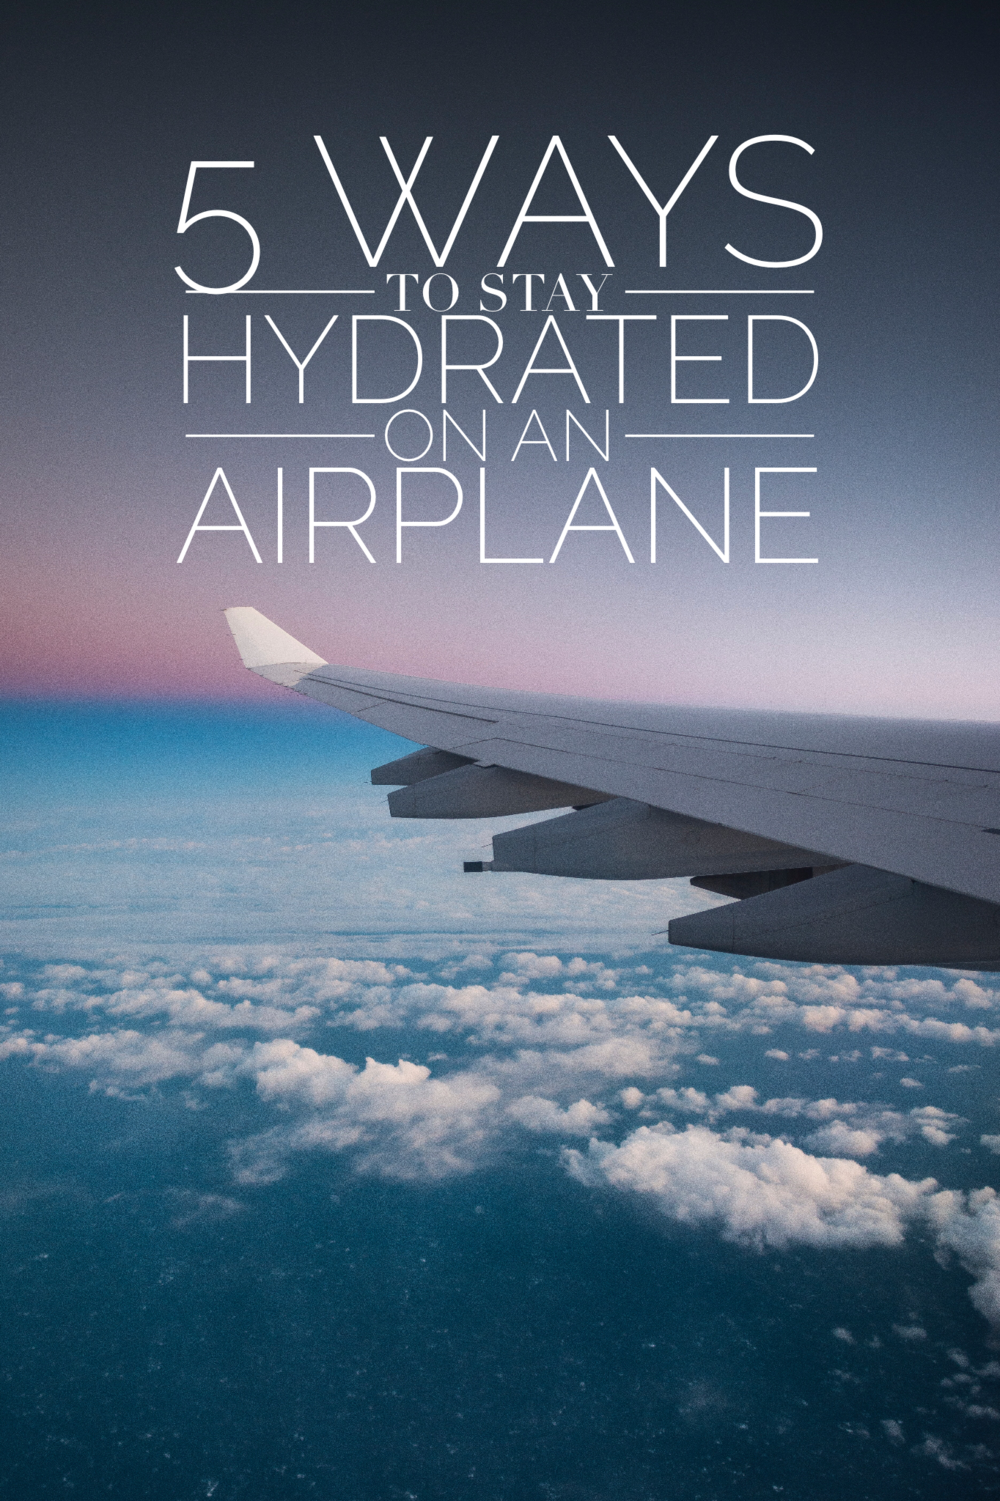 5 Ways to Stay Hydrated on a Plane. One of the best ways to feel great while traveling is to make sure you stay hydrated when you're on the plane. With only a little preparation, you can have a much healthier, happier flight!